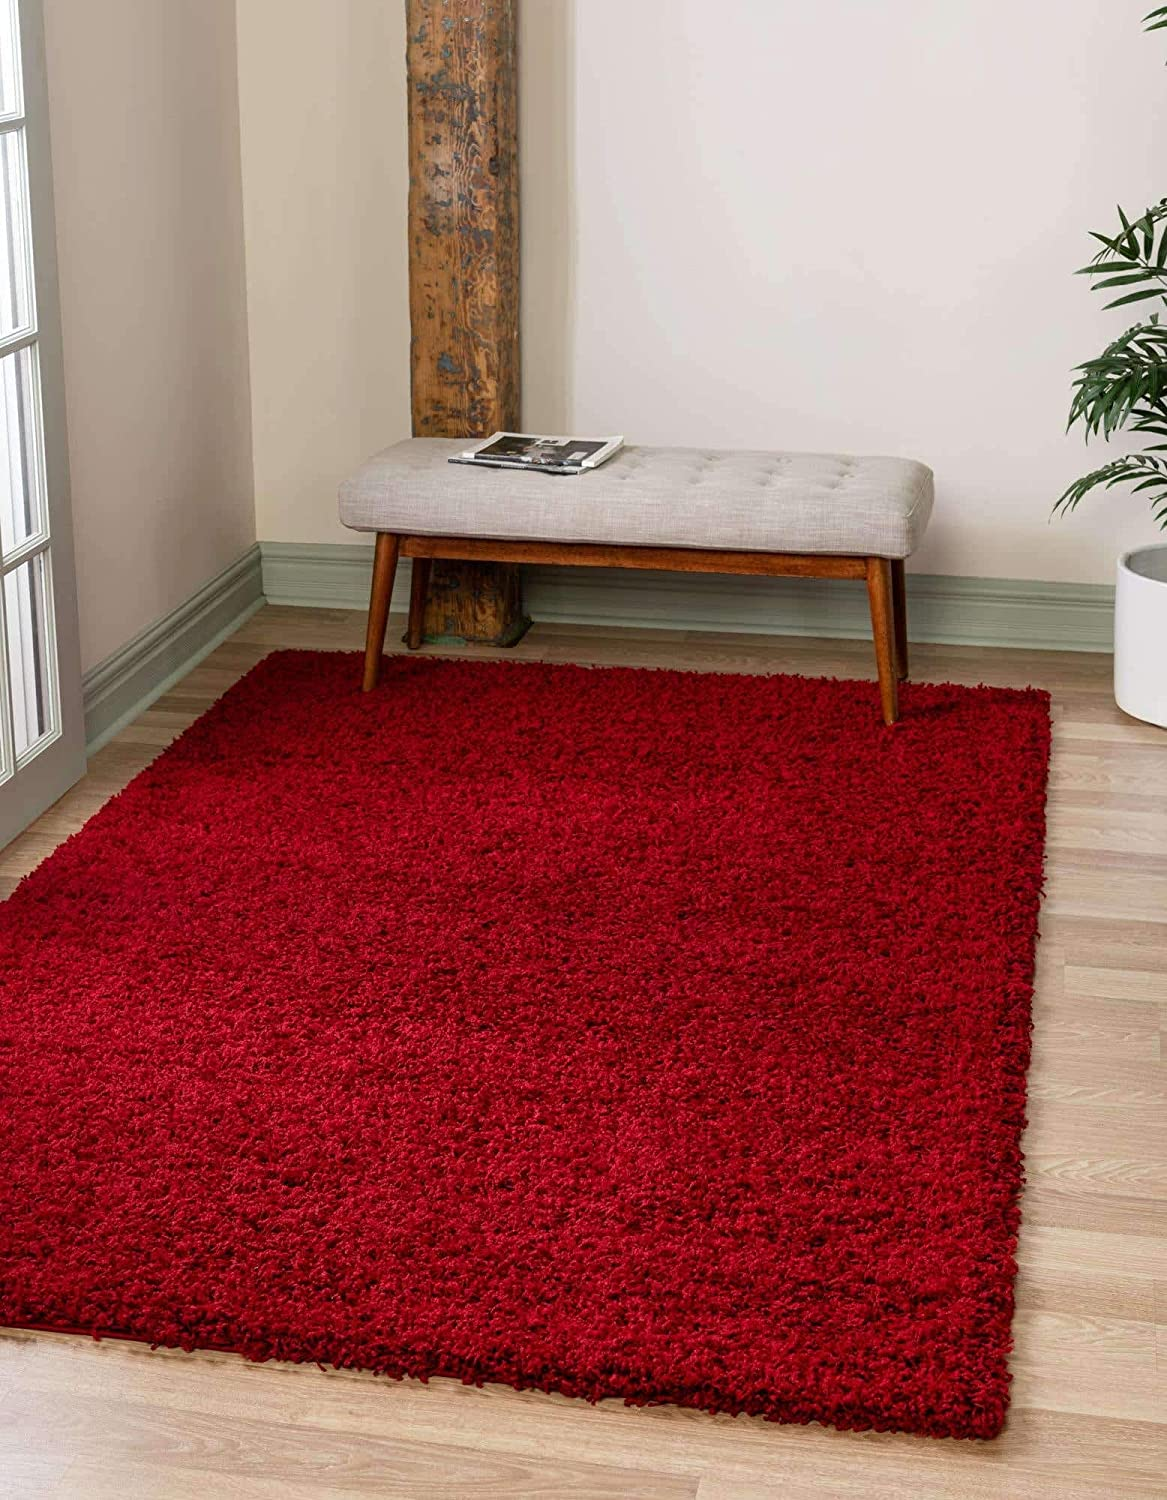 Unique Loom Solo Solid Shag Collection Modern Plush Cherry Red Area Rug (10' x 13')